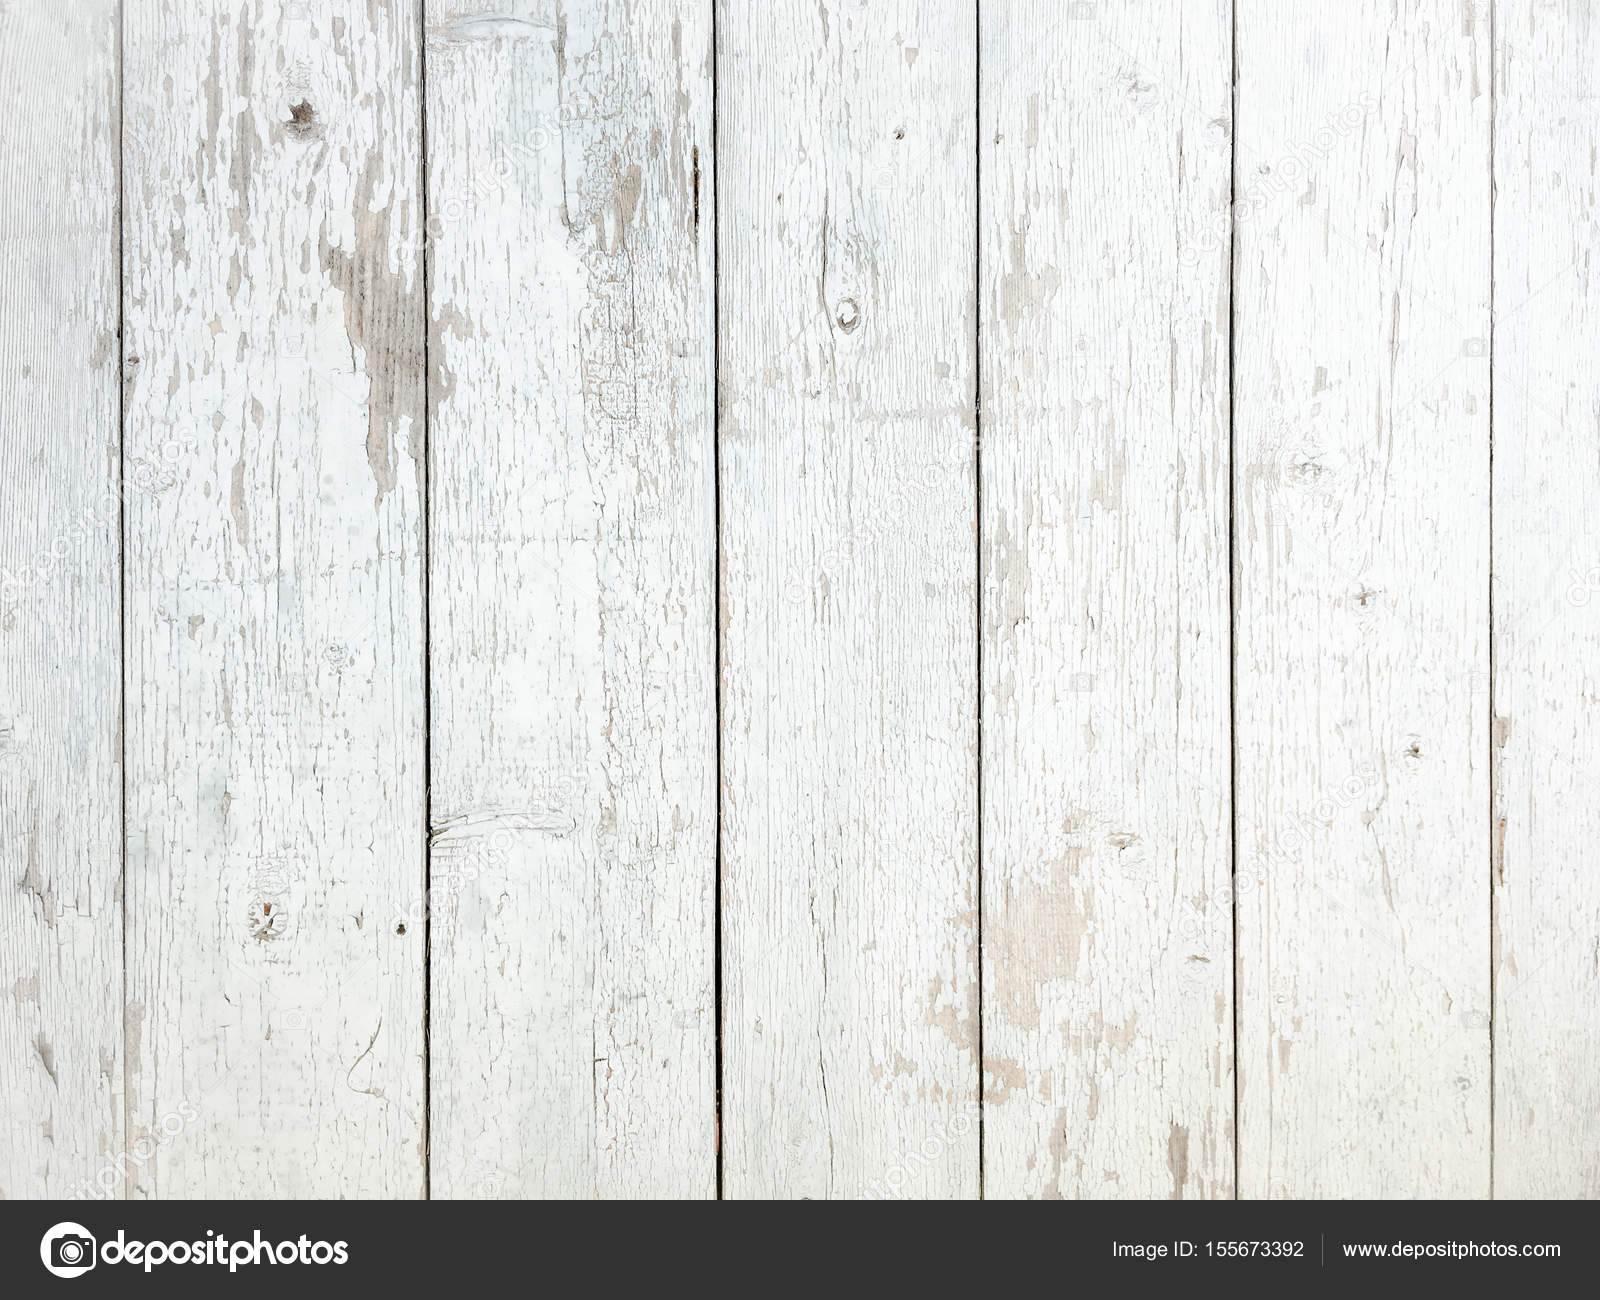 White Organic Wood Texture Light Wooden Background Old Washed Stock Photo